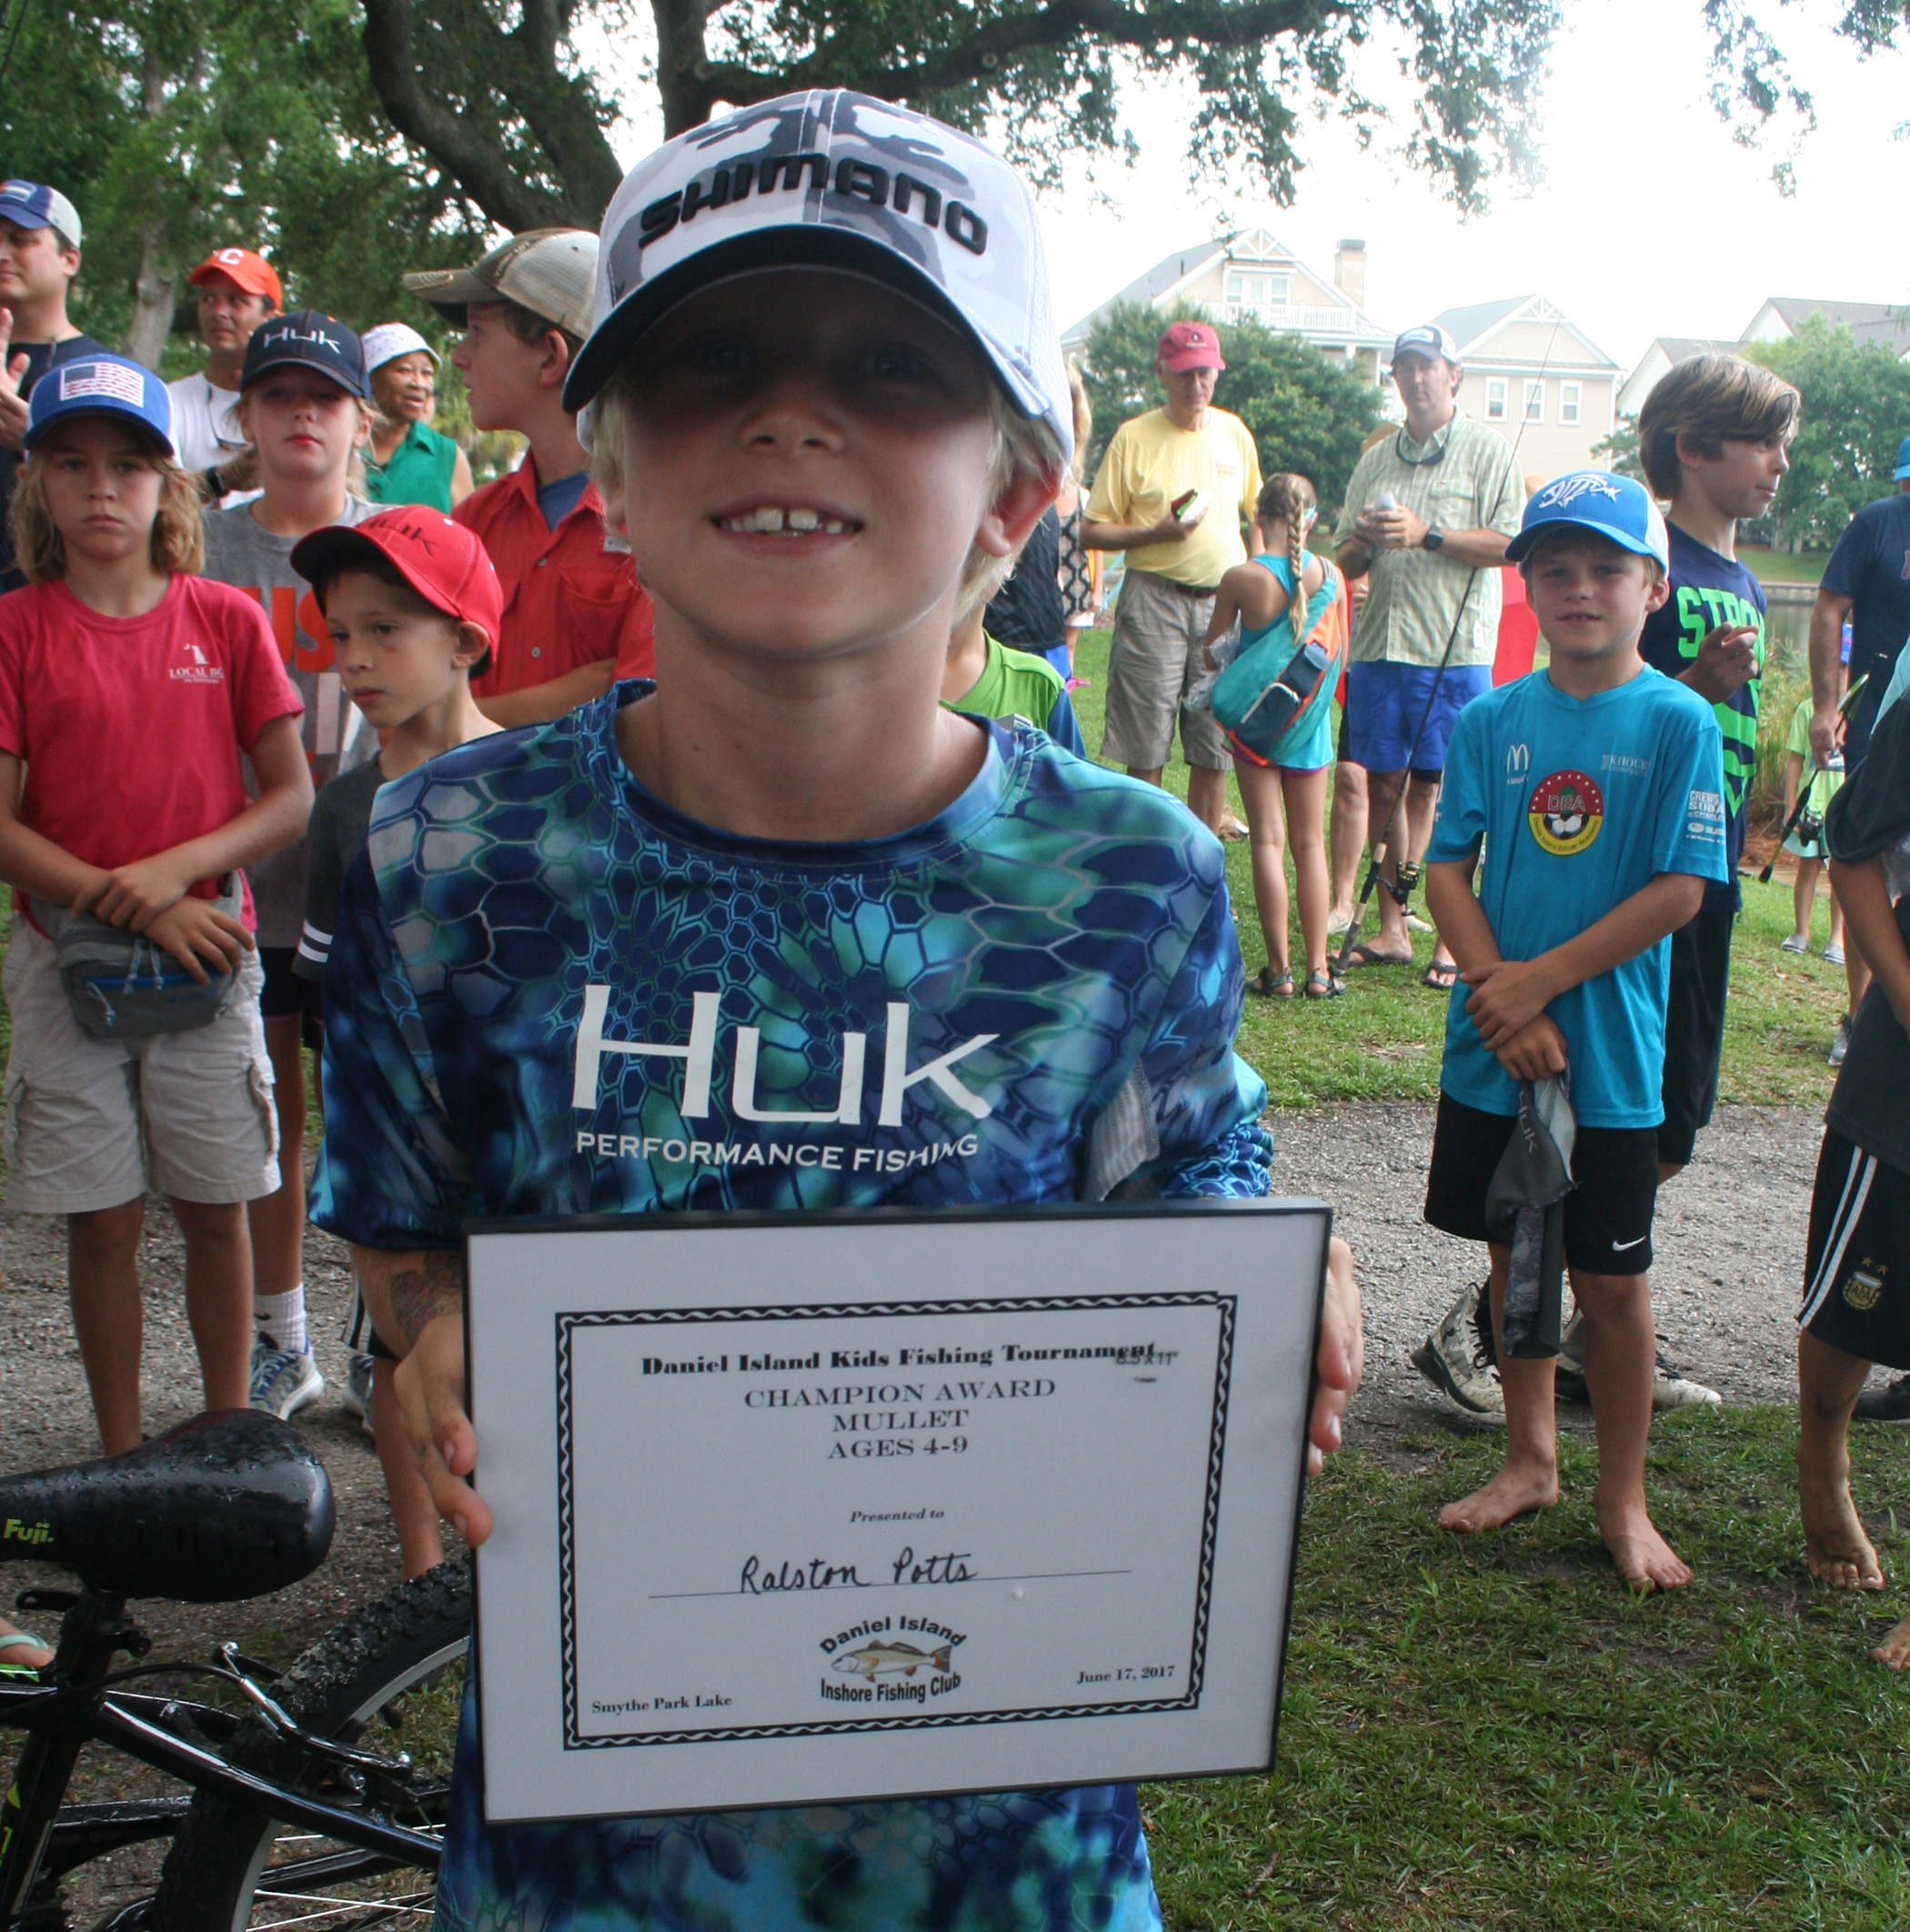 The Champion Award in the 4-9 age Mullet category went to Ralston Potts, who caught a 14 inch fish. The first runner up was Allean Potts and the second runner up was Will Ferguson.